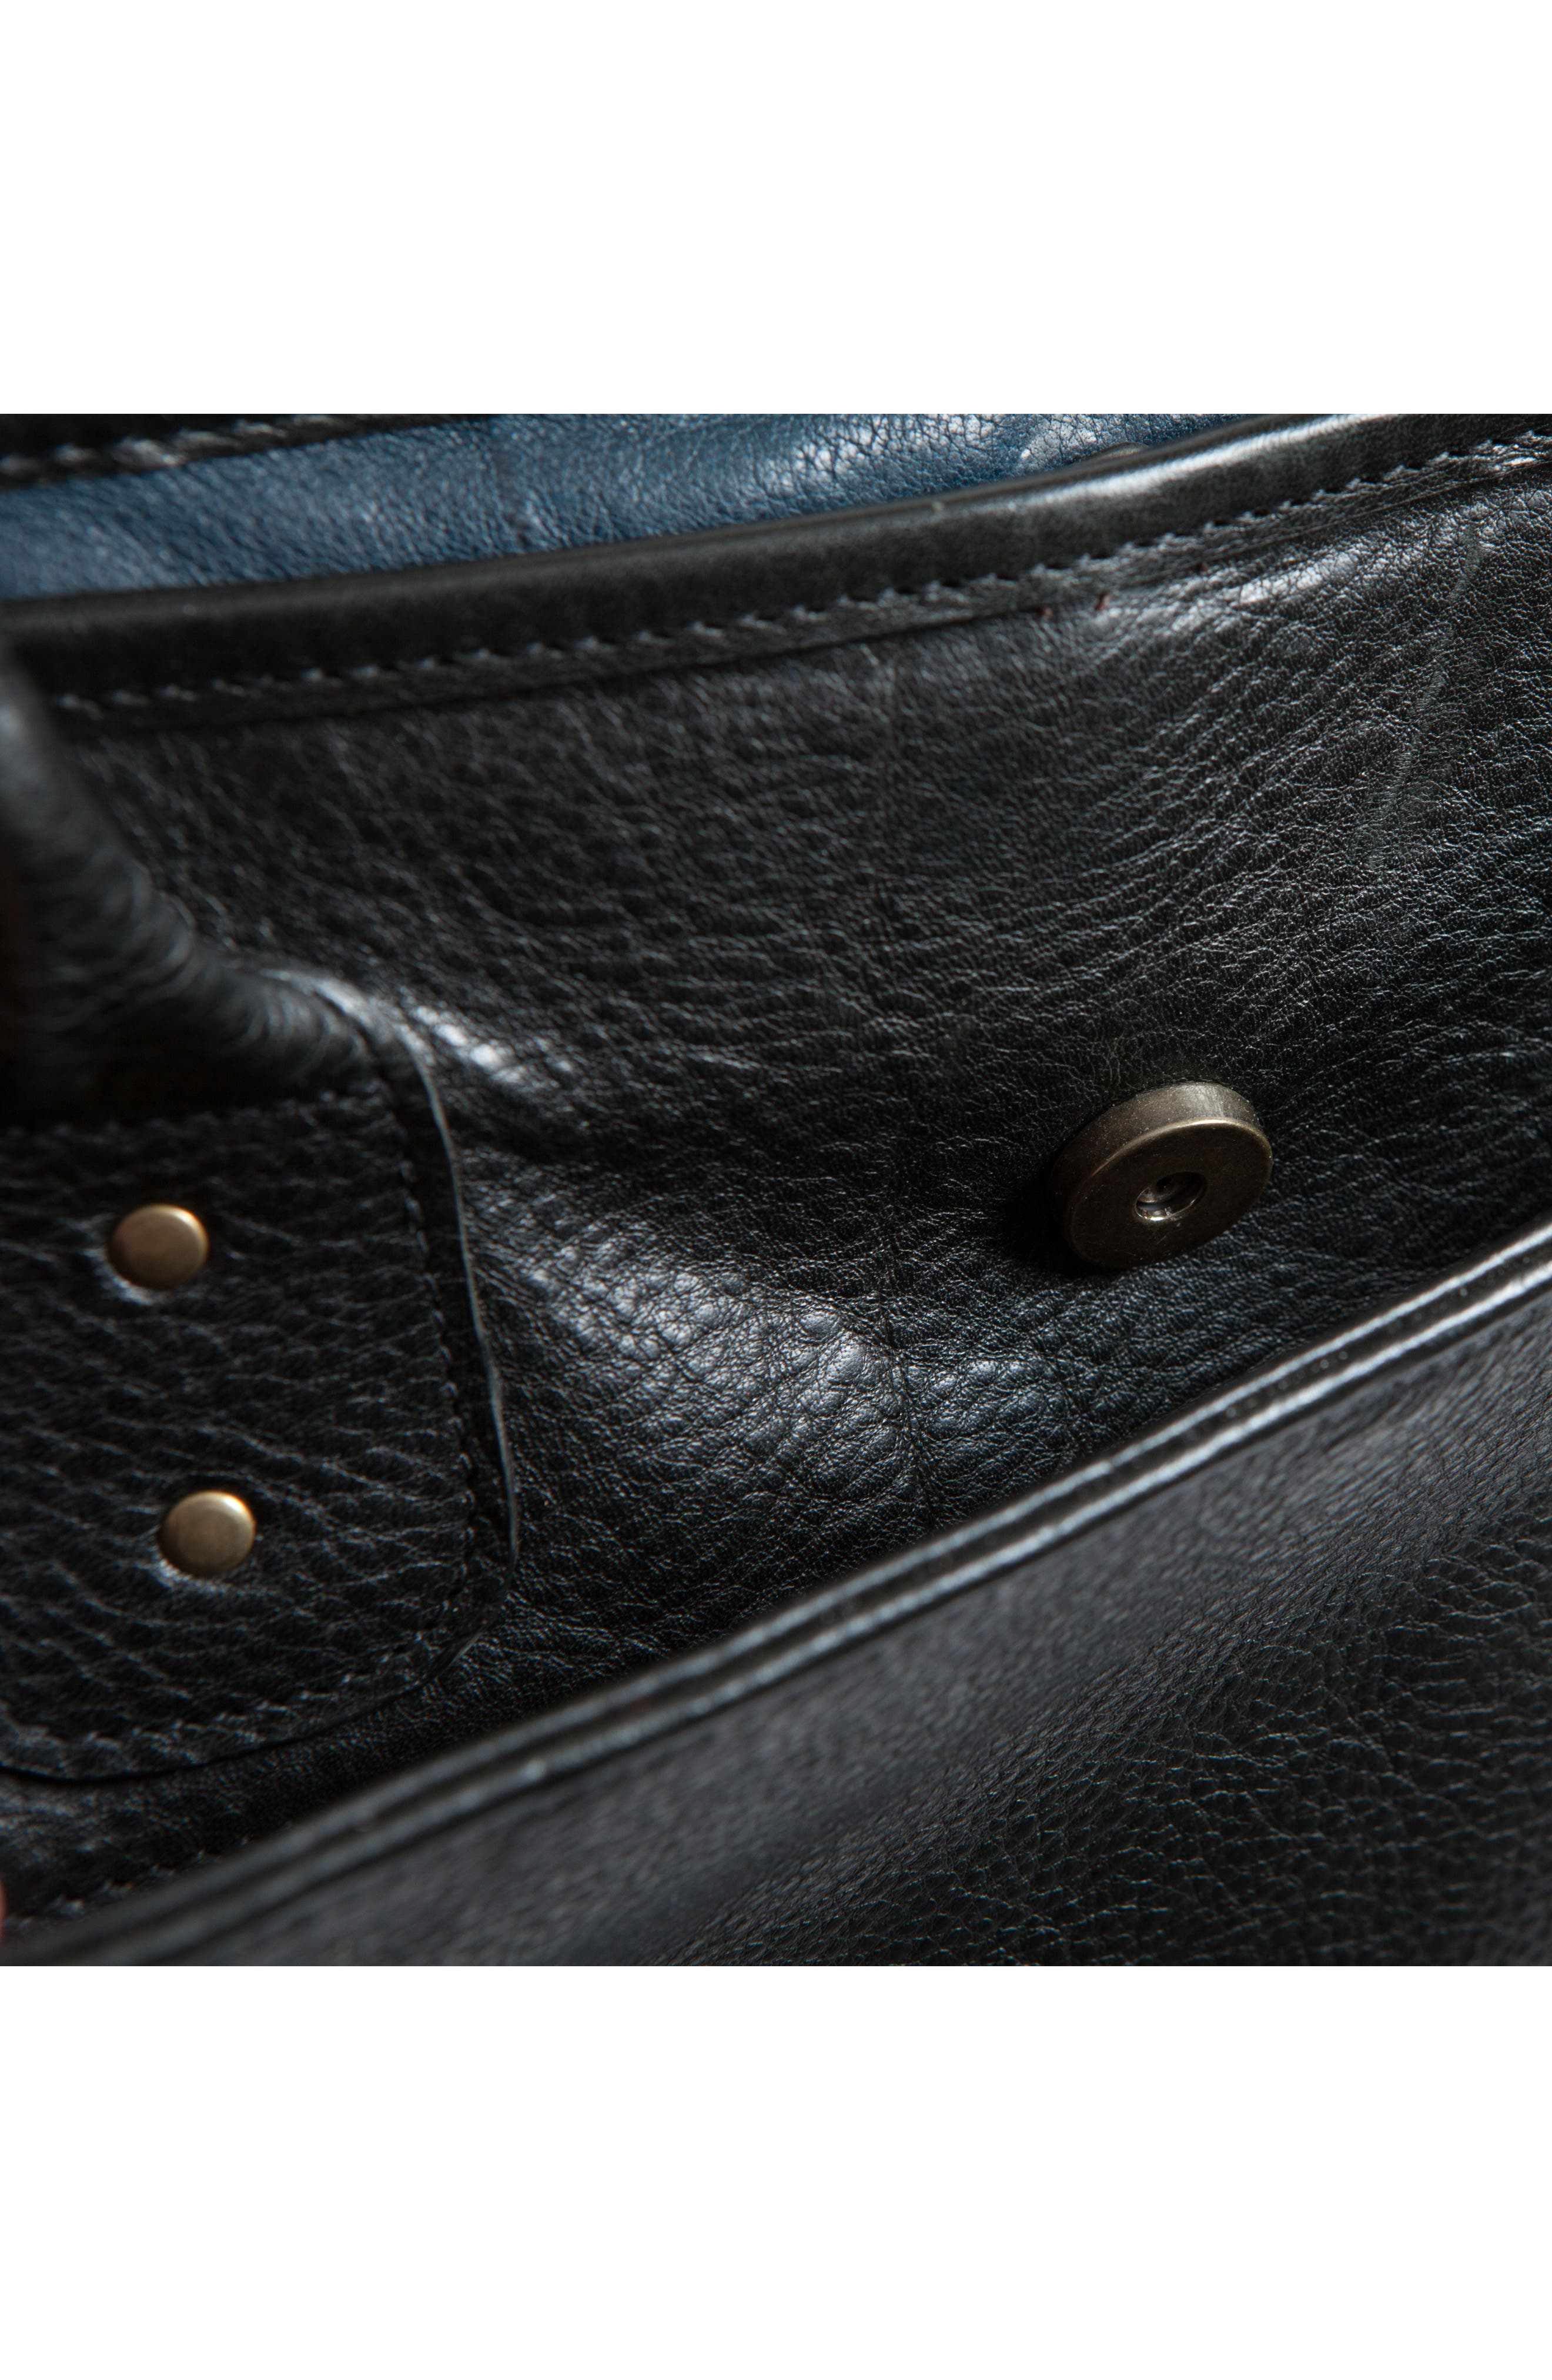 Miller Leather Briefcase,                             Alternate thumbnail 7, color,                             Titan Milled Navy And Gunmetal